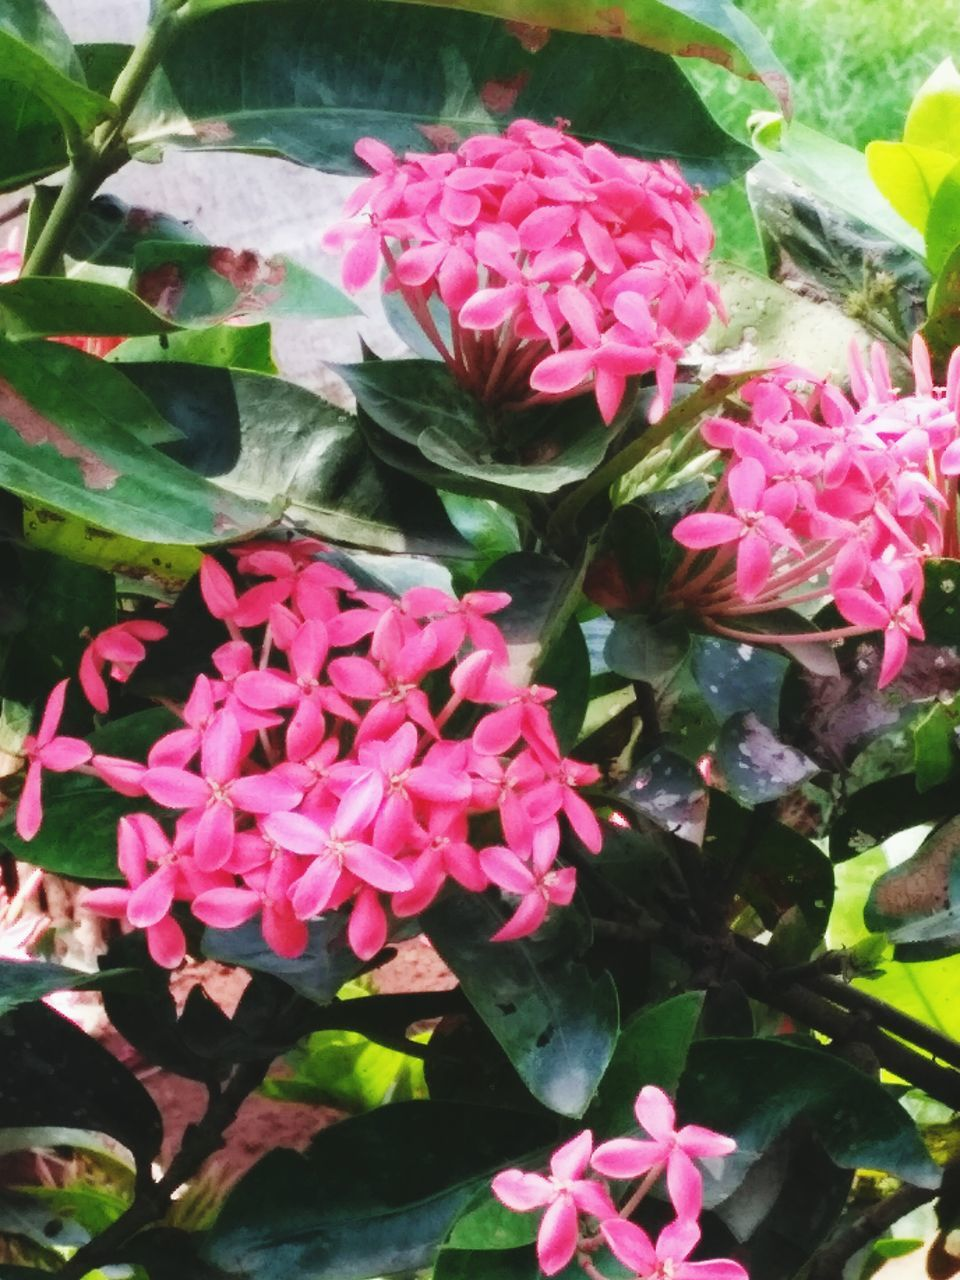 flower, pink color, beauty in nature, fragility, petal, nature, growth, freshness, flower head, no people, plant, day, outdoors, leaf, blooming, close-up